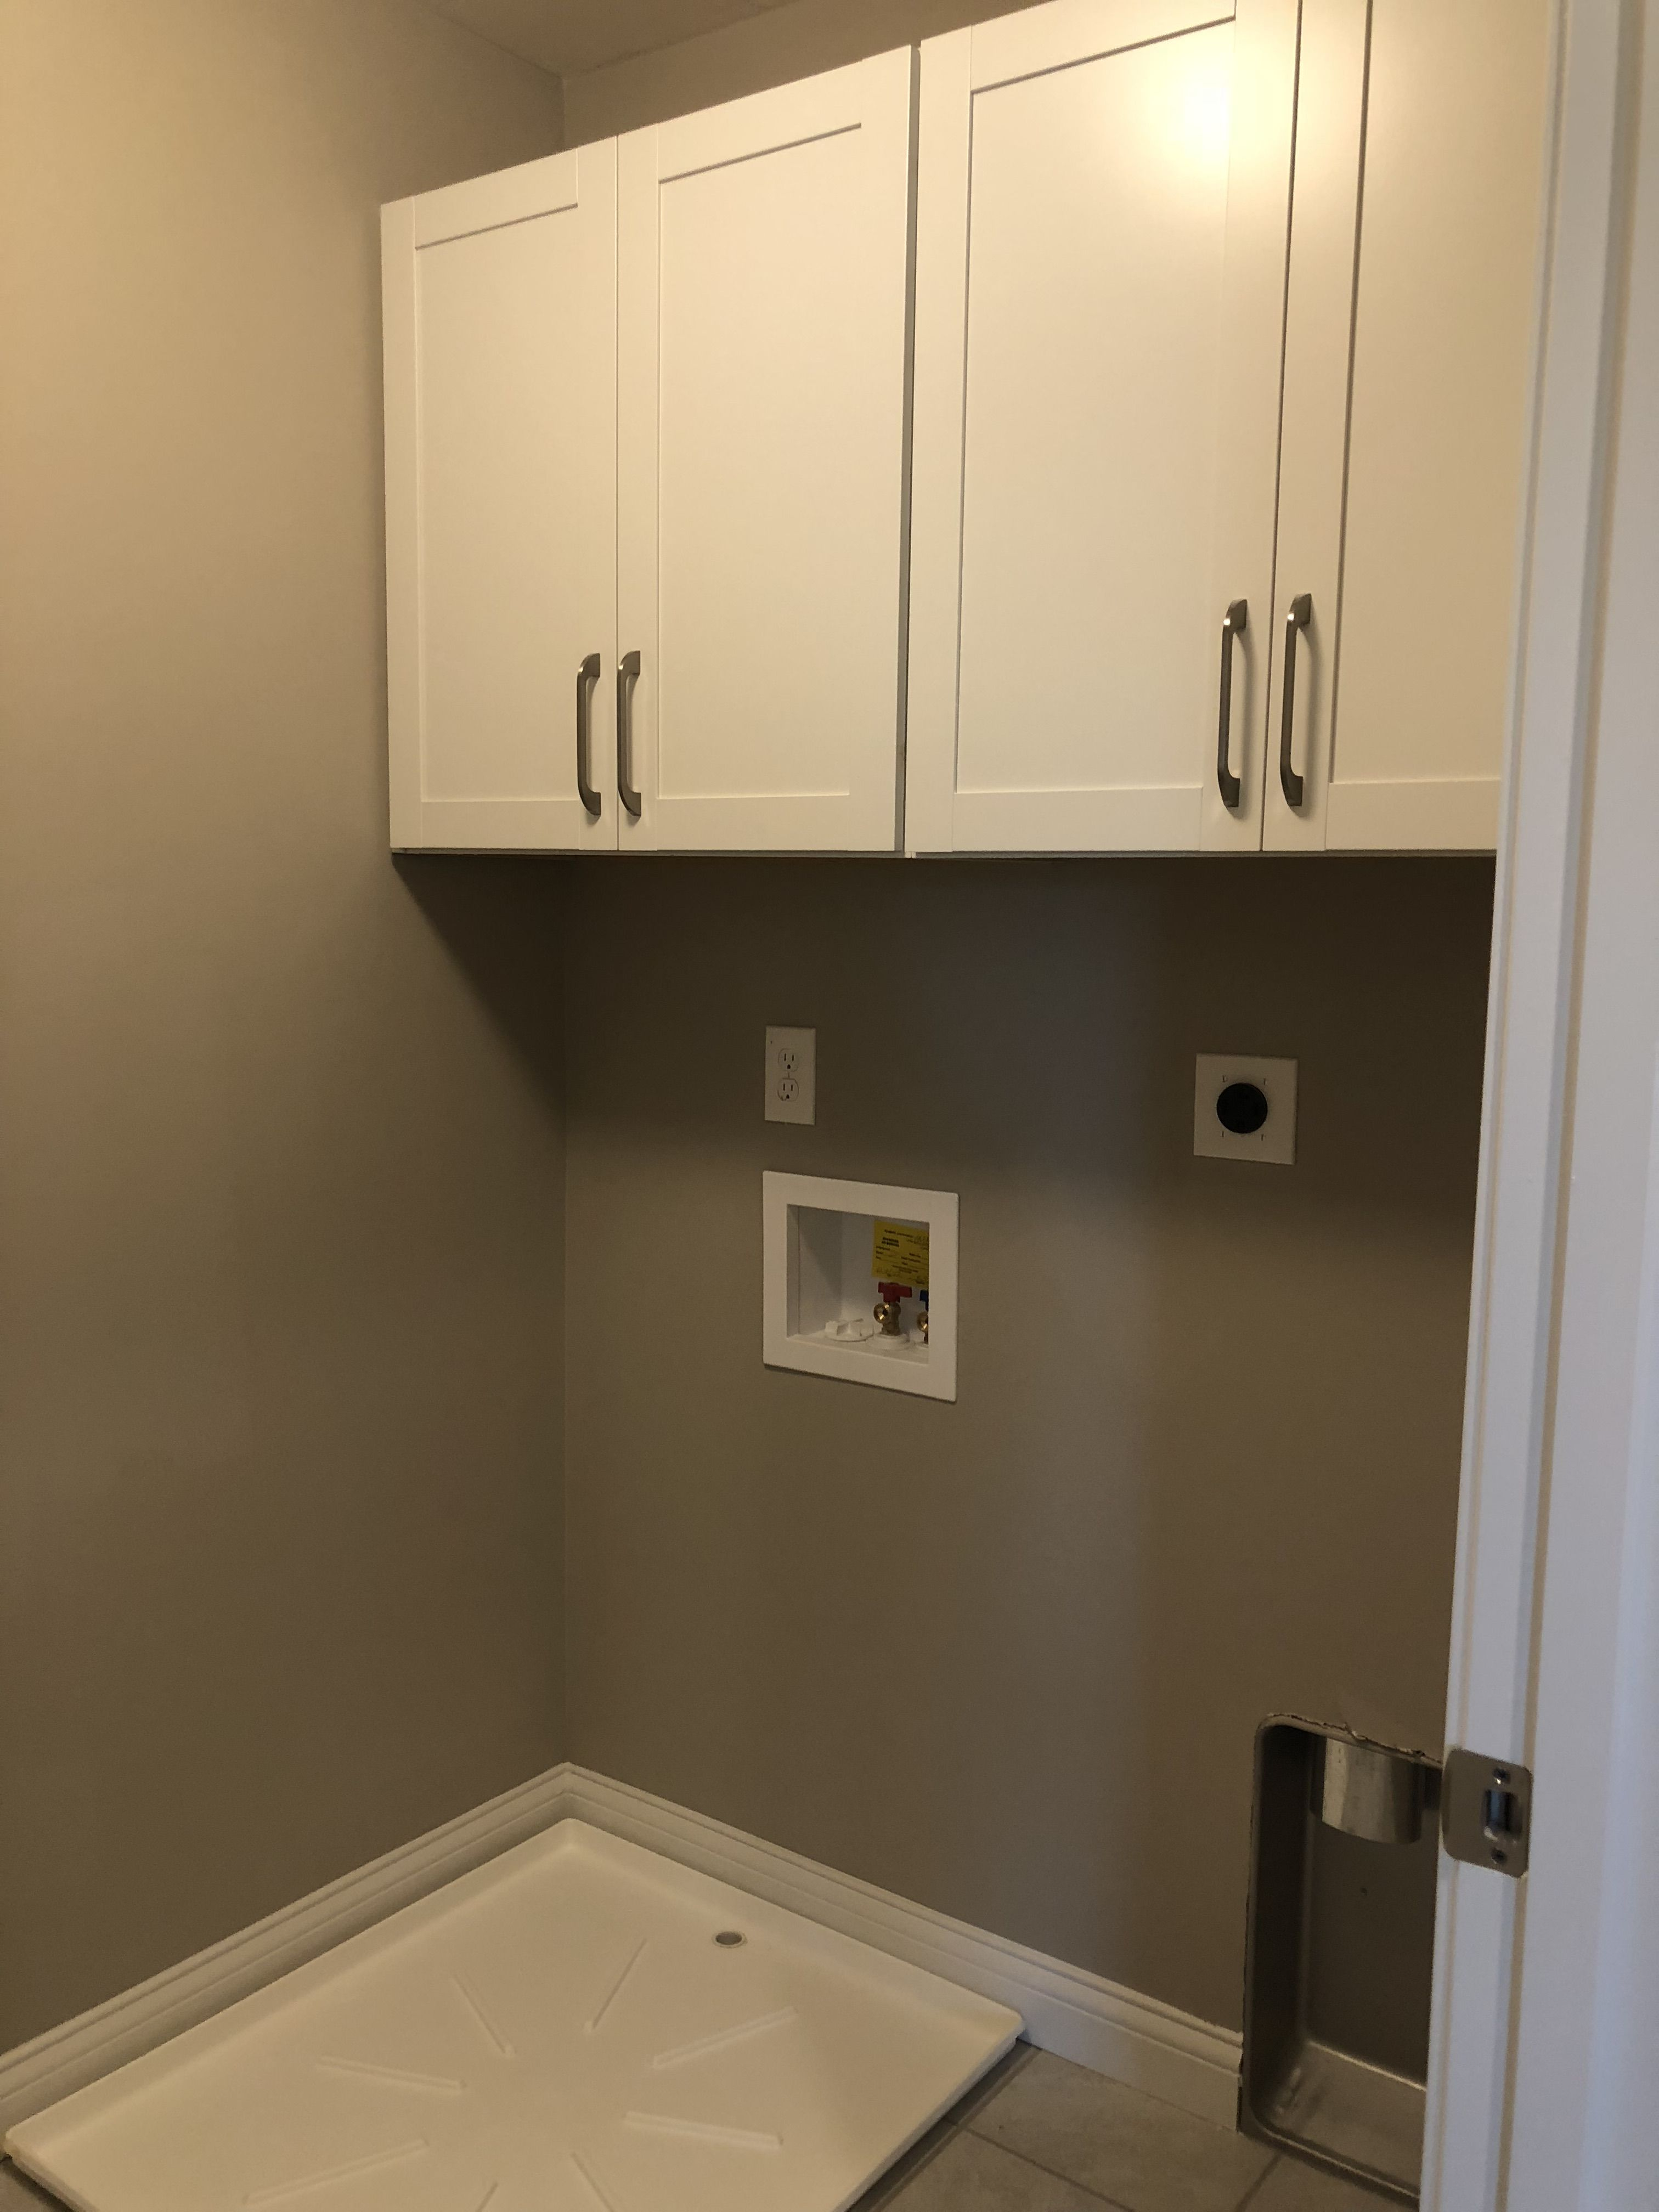 Brellin White Cabinets Above Washer Dryer In Laundry Room